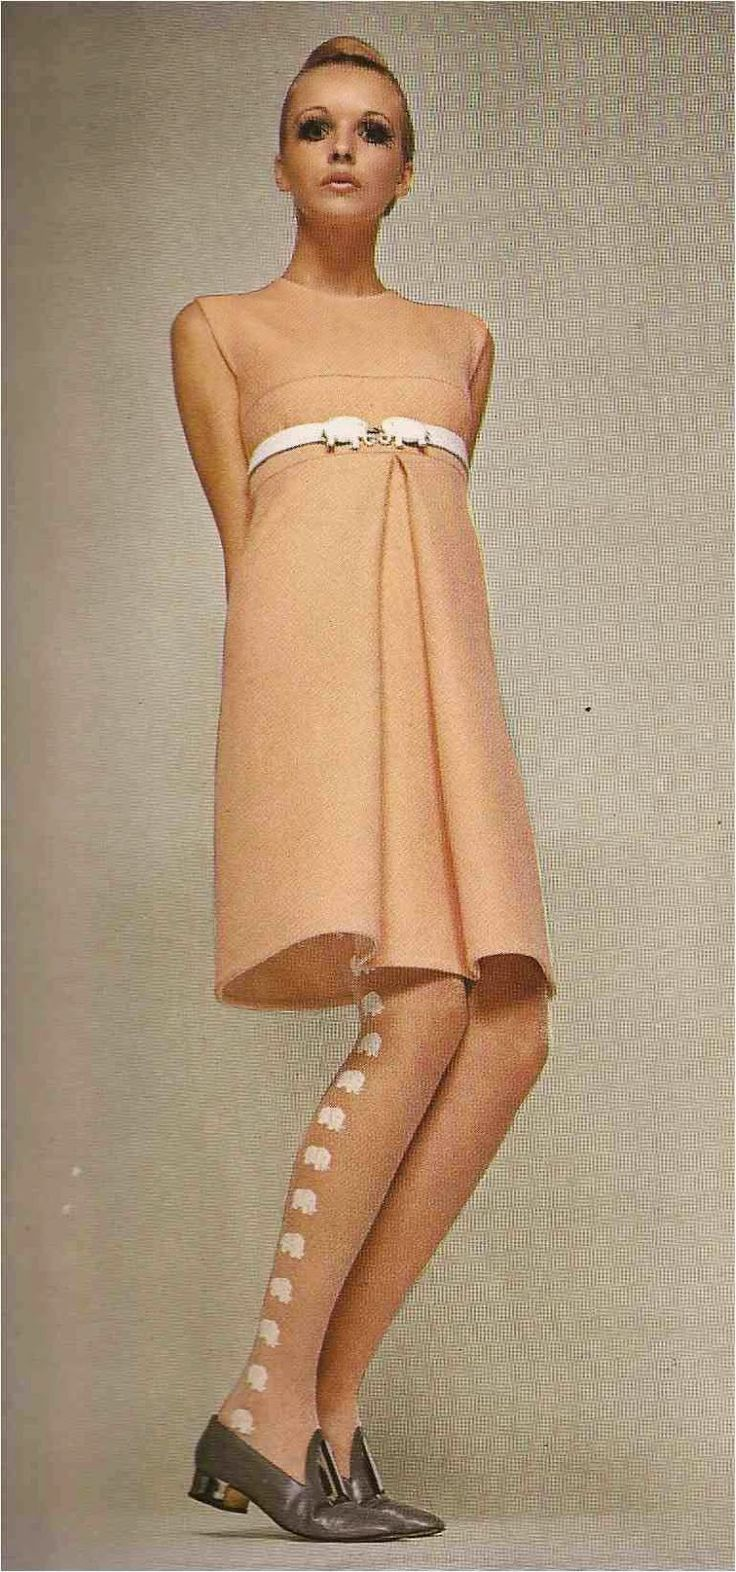 1960's Inspiration for figure skating dresses, images collected by Sk8 Gr8 Designs